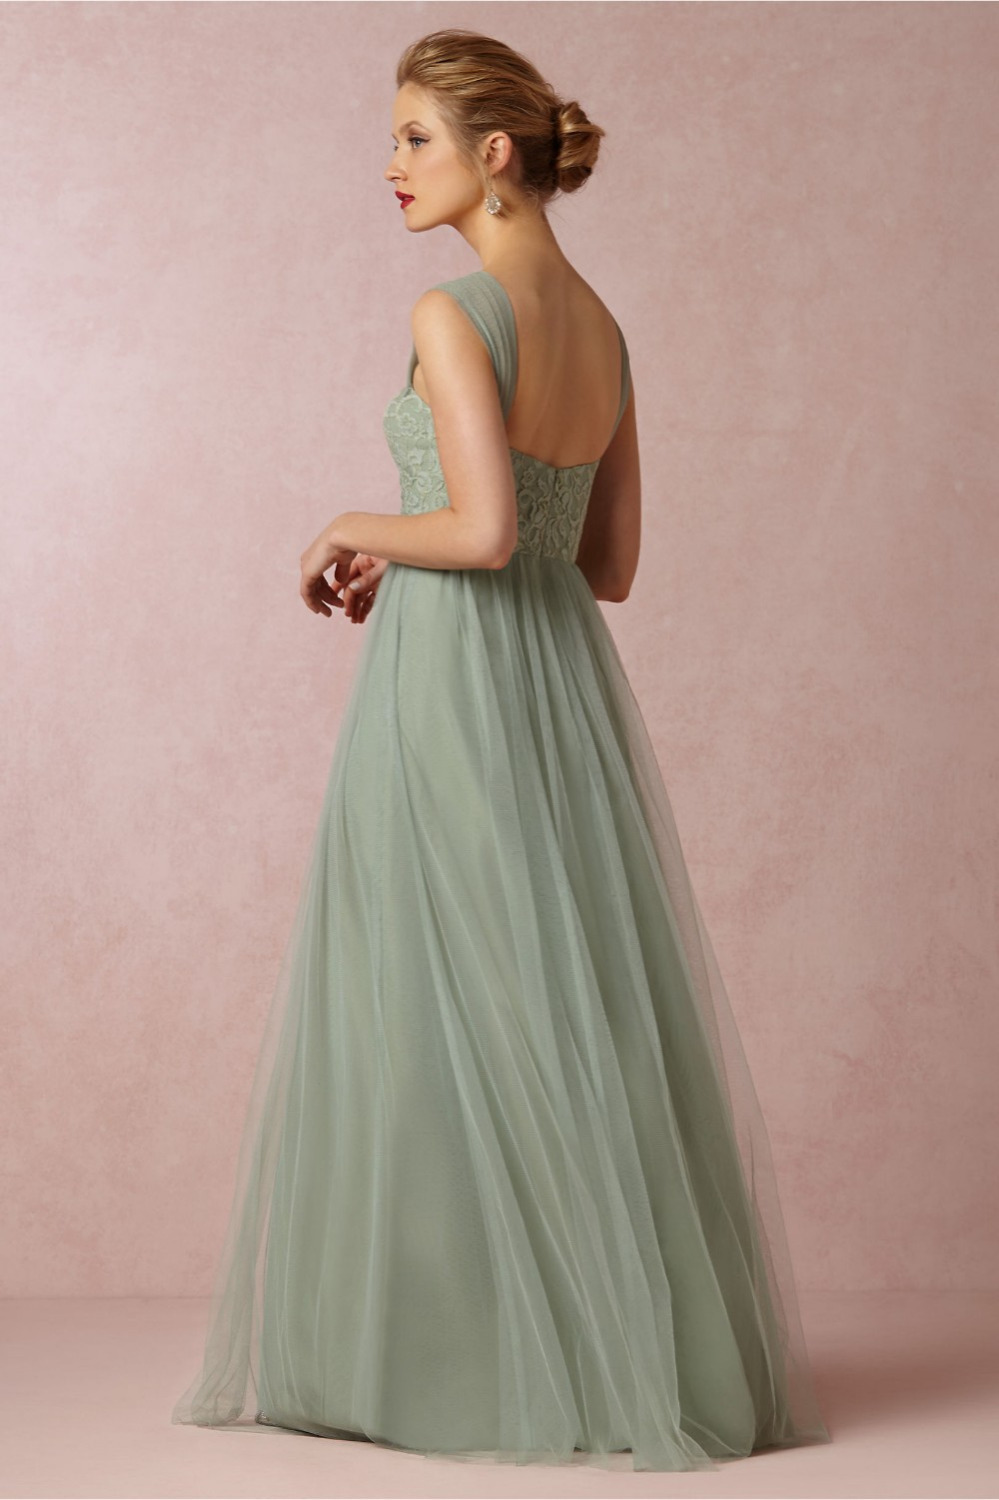 Aliexpress buy mint green long bridesmaid dresses long dress aliexpress buy mint green long bridesmaid dresses long dress to party wedding sheer strap prom gown vestido madrinha casamento imported china from ombrellifo Gallery